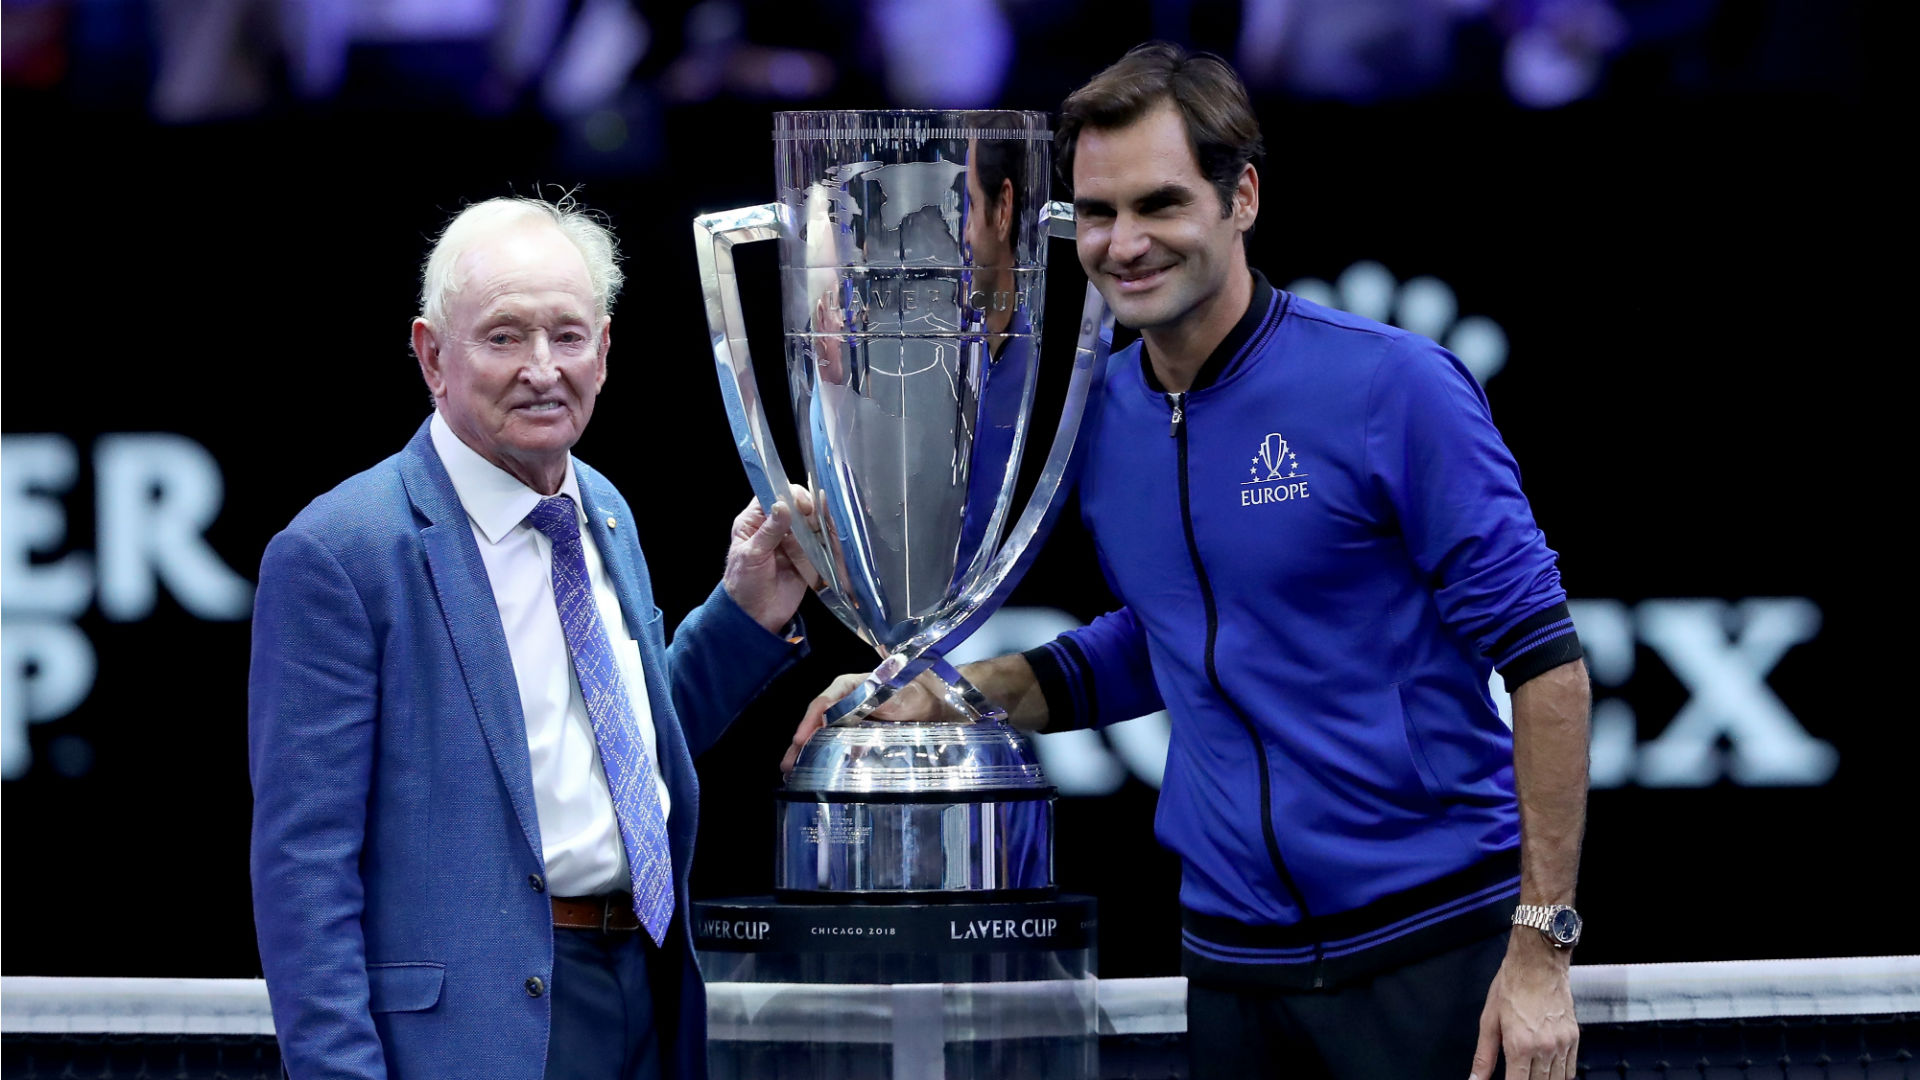 The Laver Cup, an event which features players from Europe take on a team from the rest of the world, has been added to the ATP World Tour.